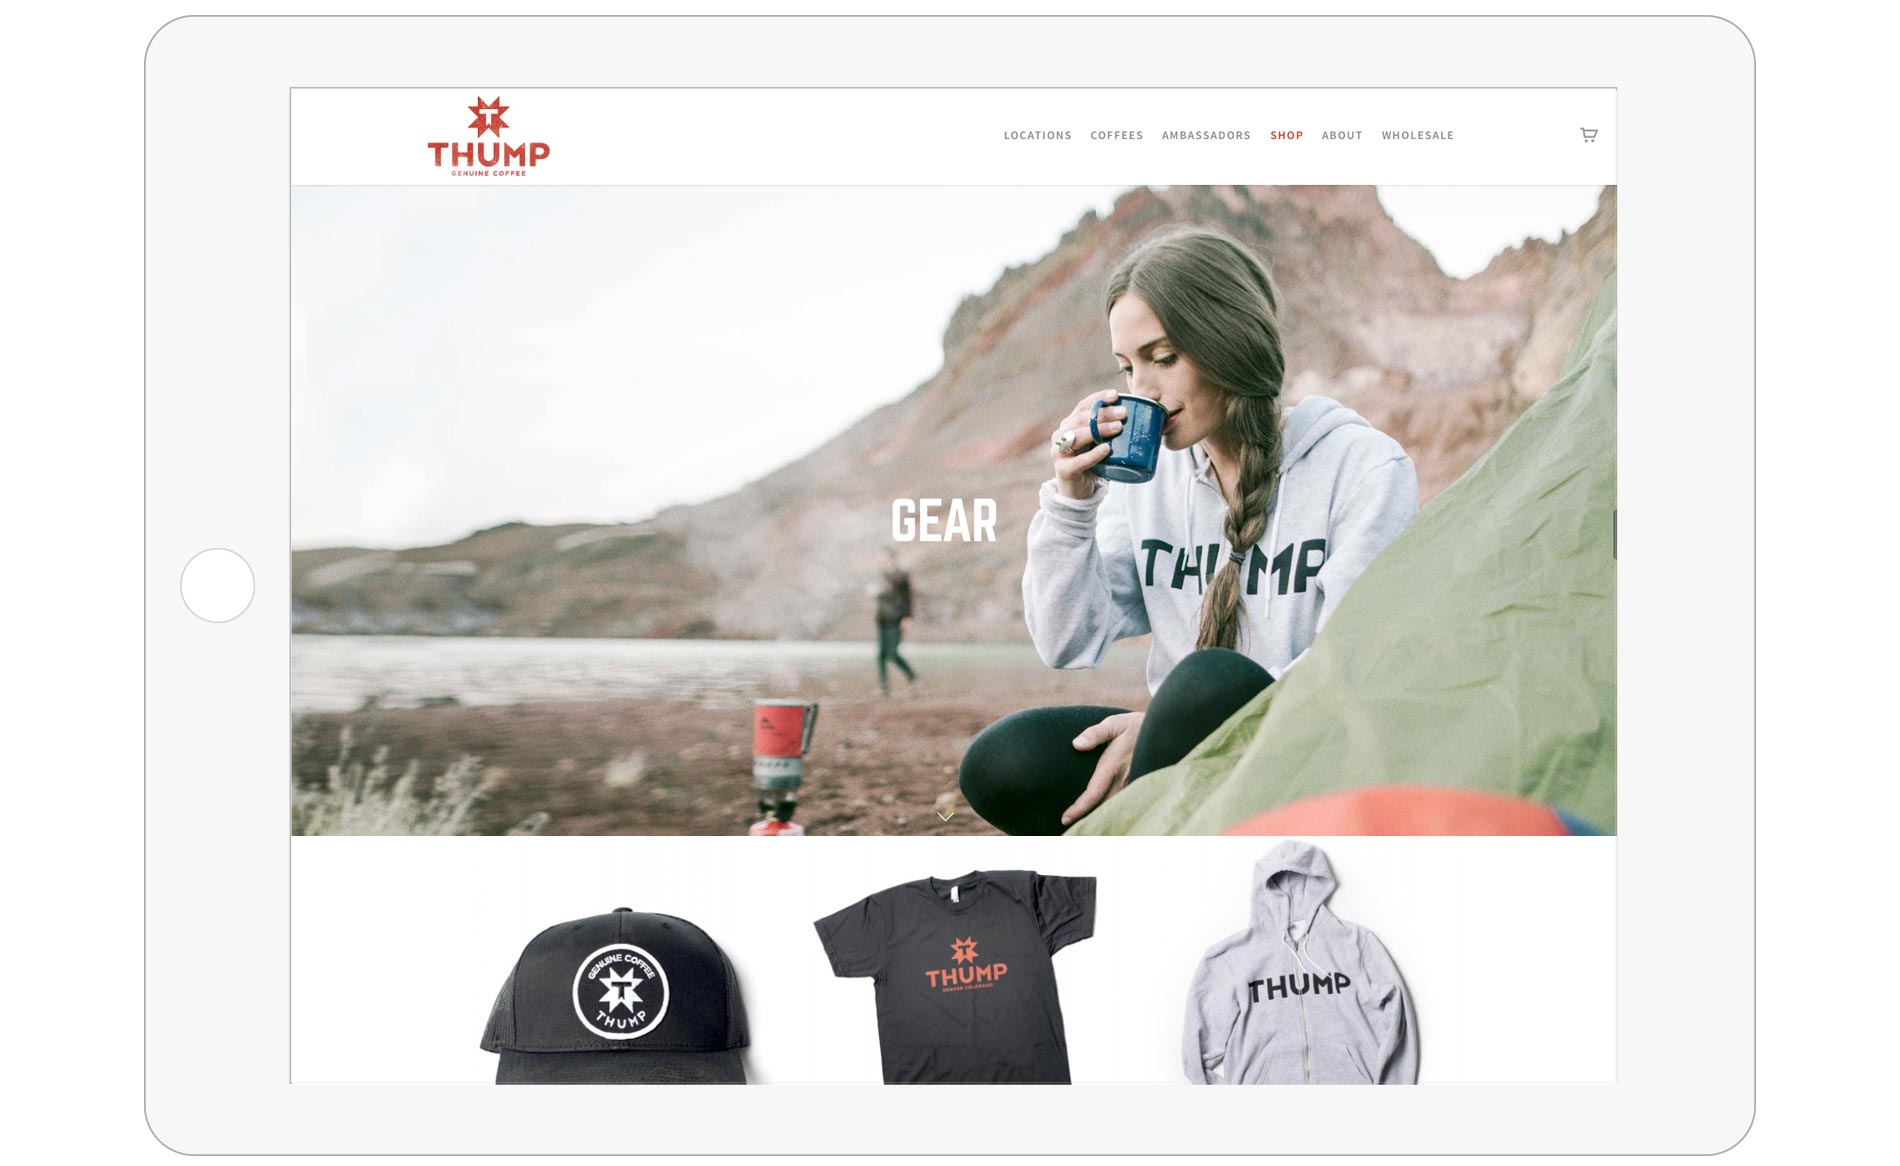 Thump Coffee Web Design - Tablet - eCommerce